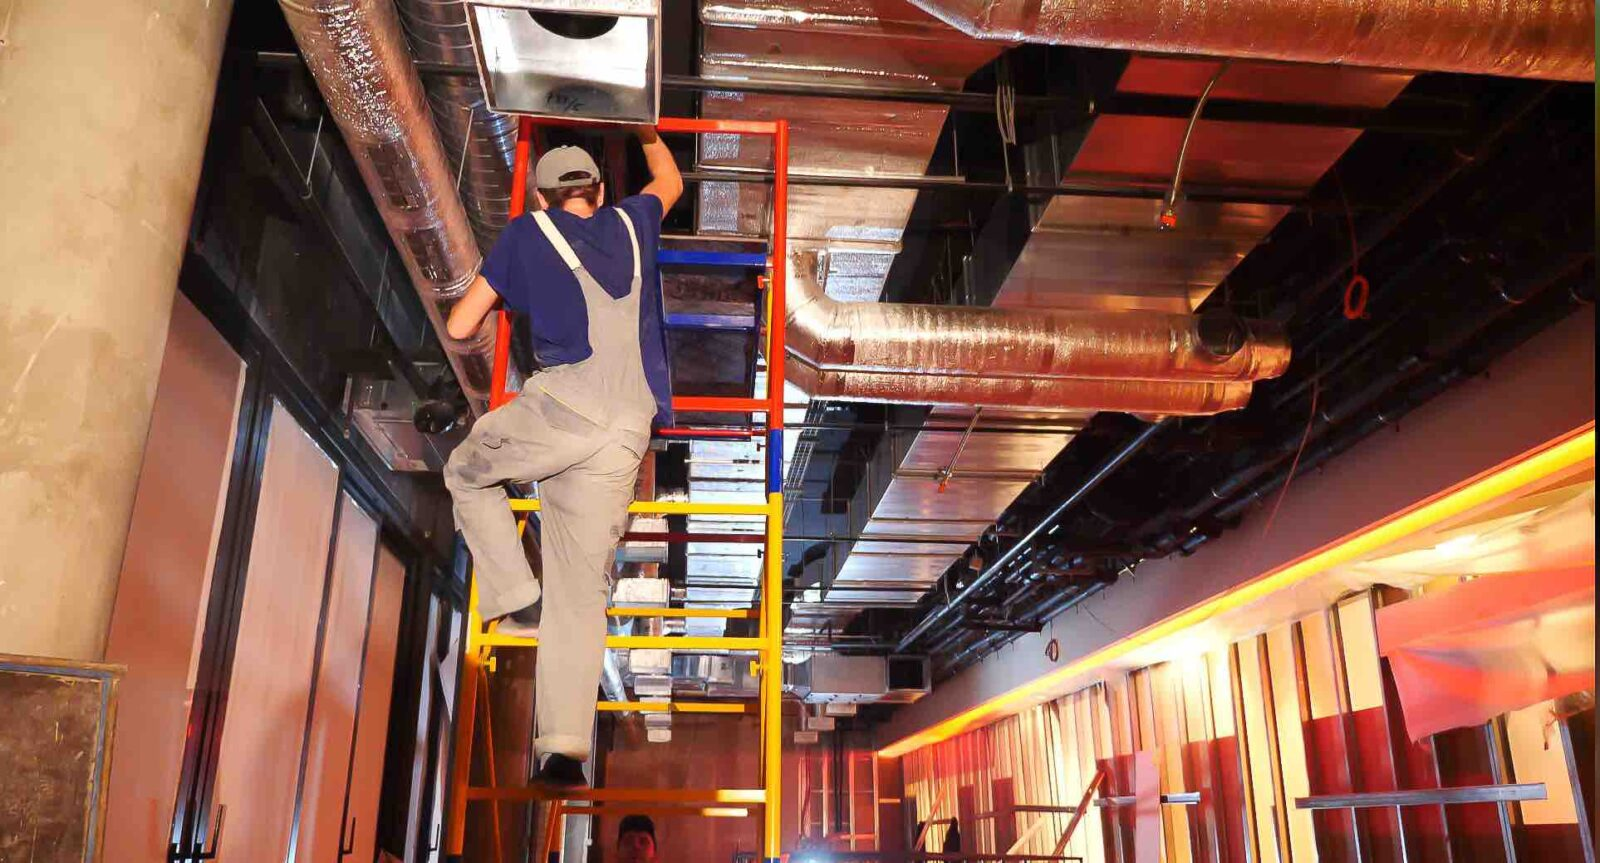 Installation of utility systems